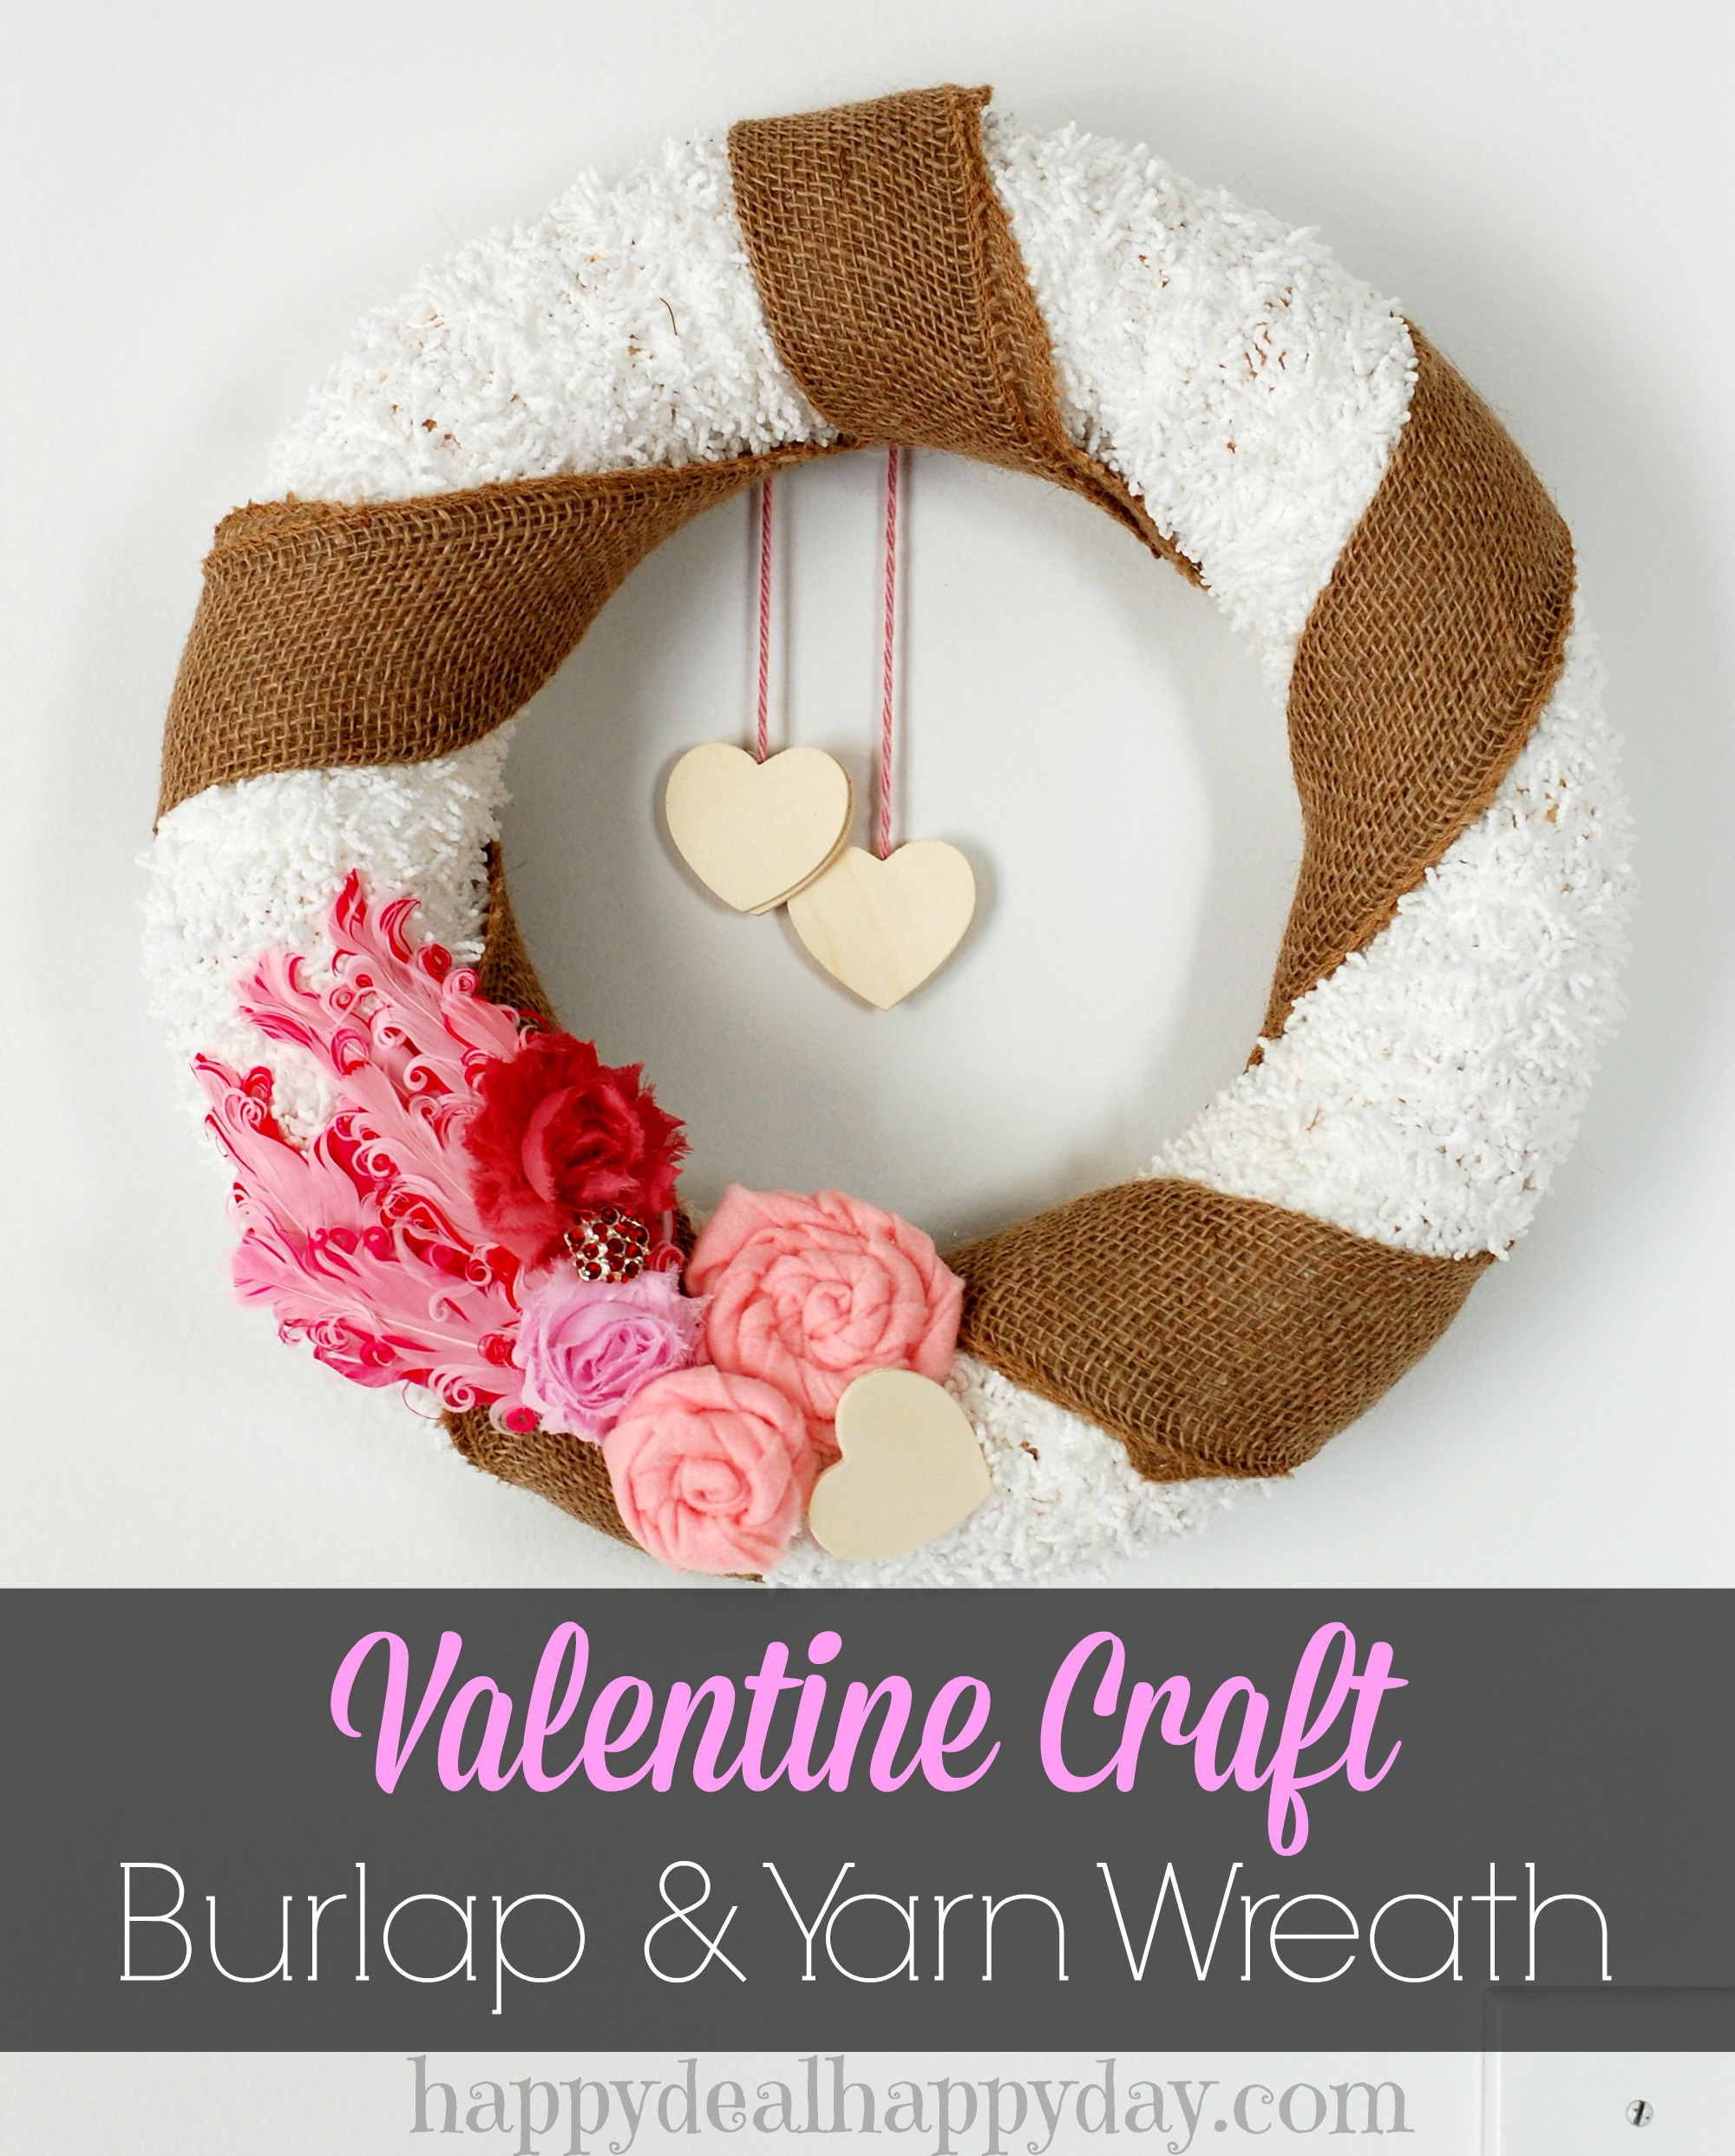 Valentine Wreath & Valentine Craft | Valentine Yarn and Burlap Wreath. So cute! I put it up right after I took down the Christmas wreath in my dining room.